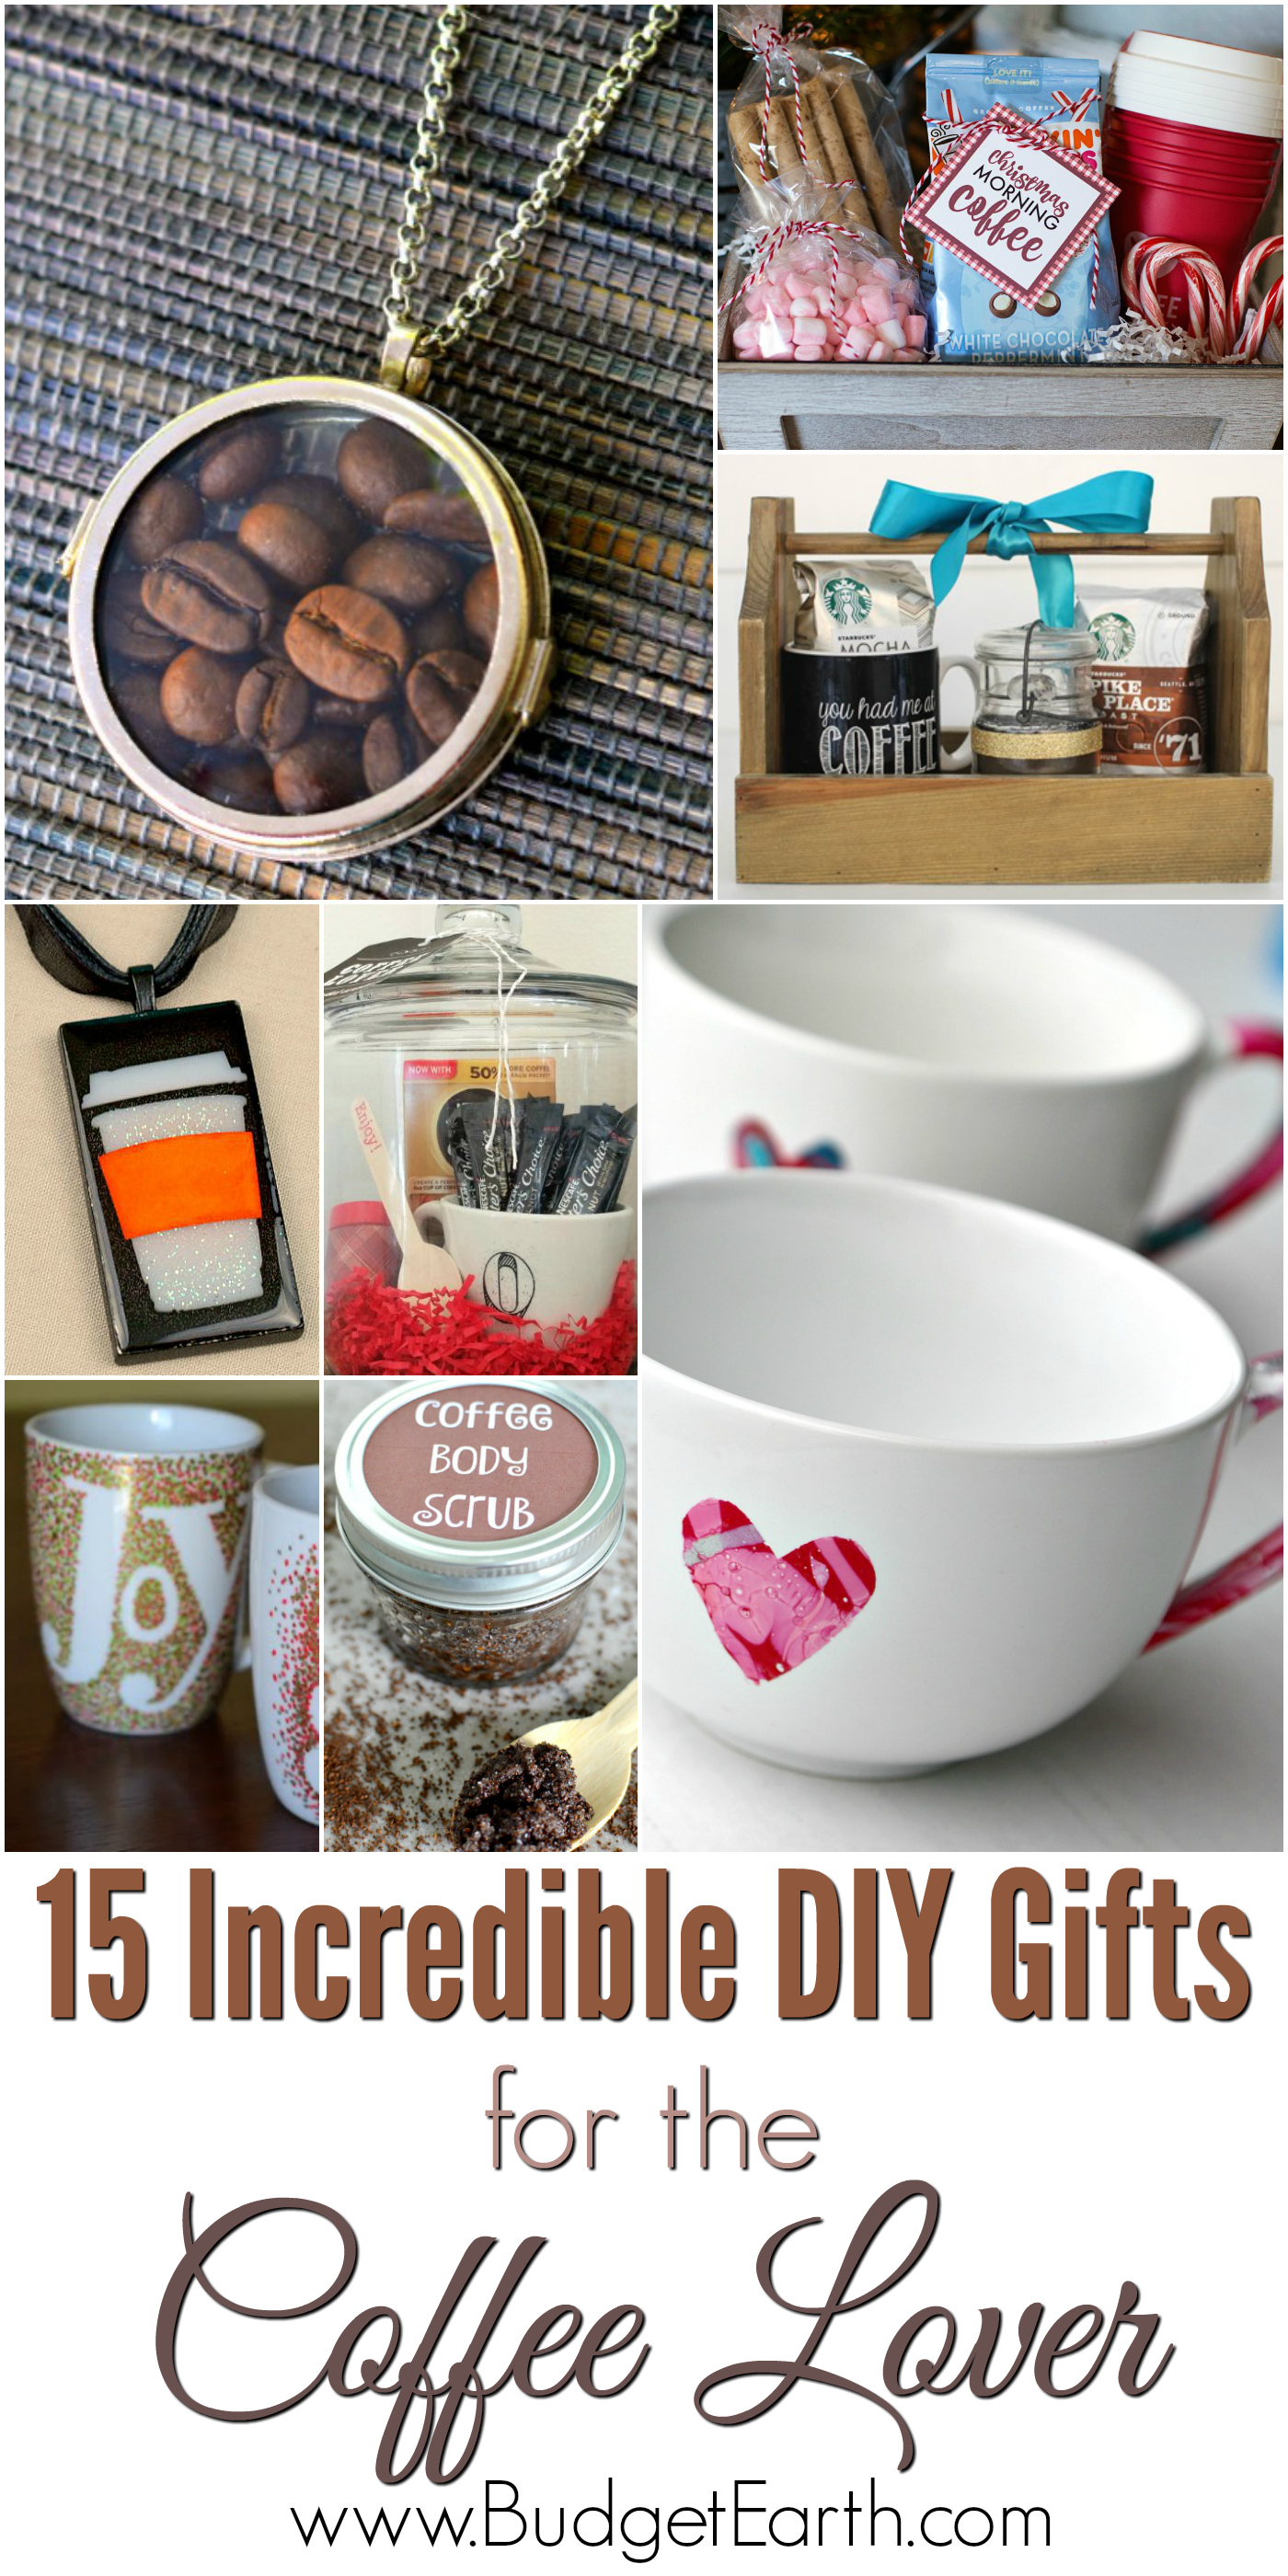 Looking for the perfect gift for someone who loves coffee? Check out our list of 15 Incredible DIY Gifts for the Coffee Lover here!